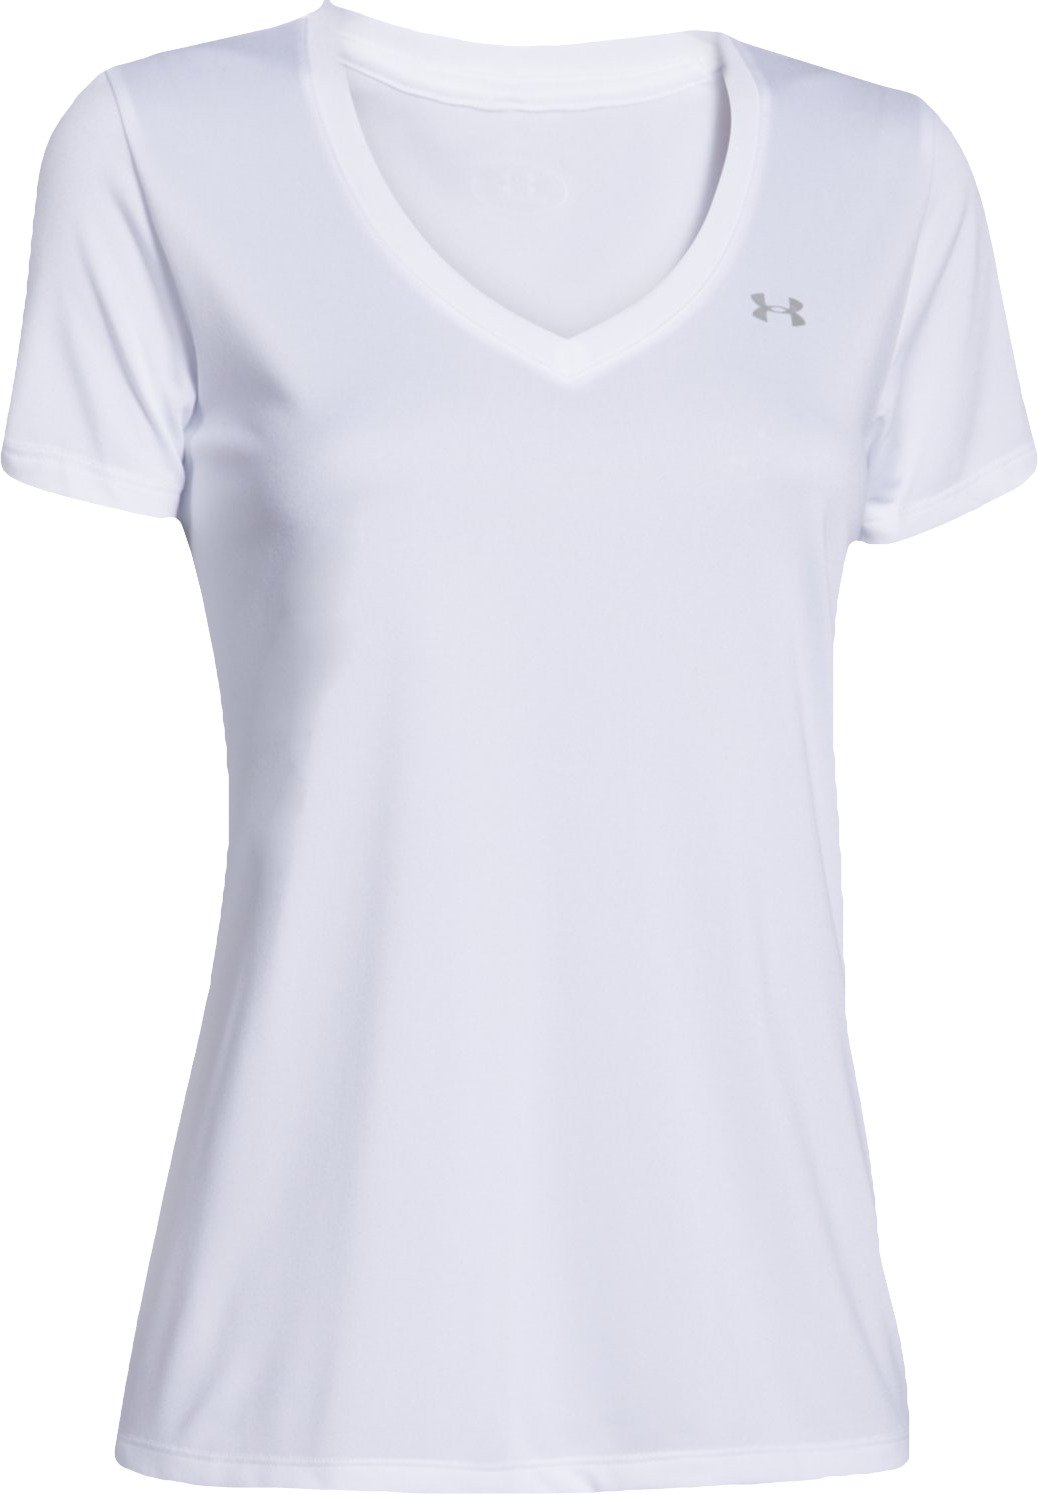 f08963f5 Under Armour Women's UA Tech V-neck T-shirt